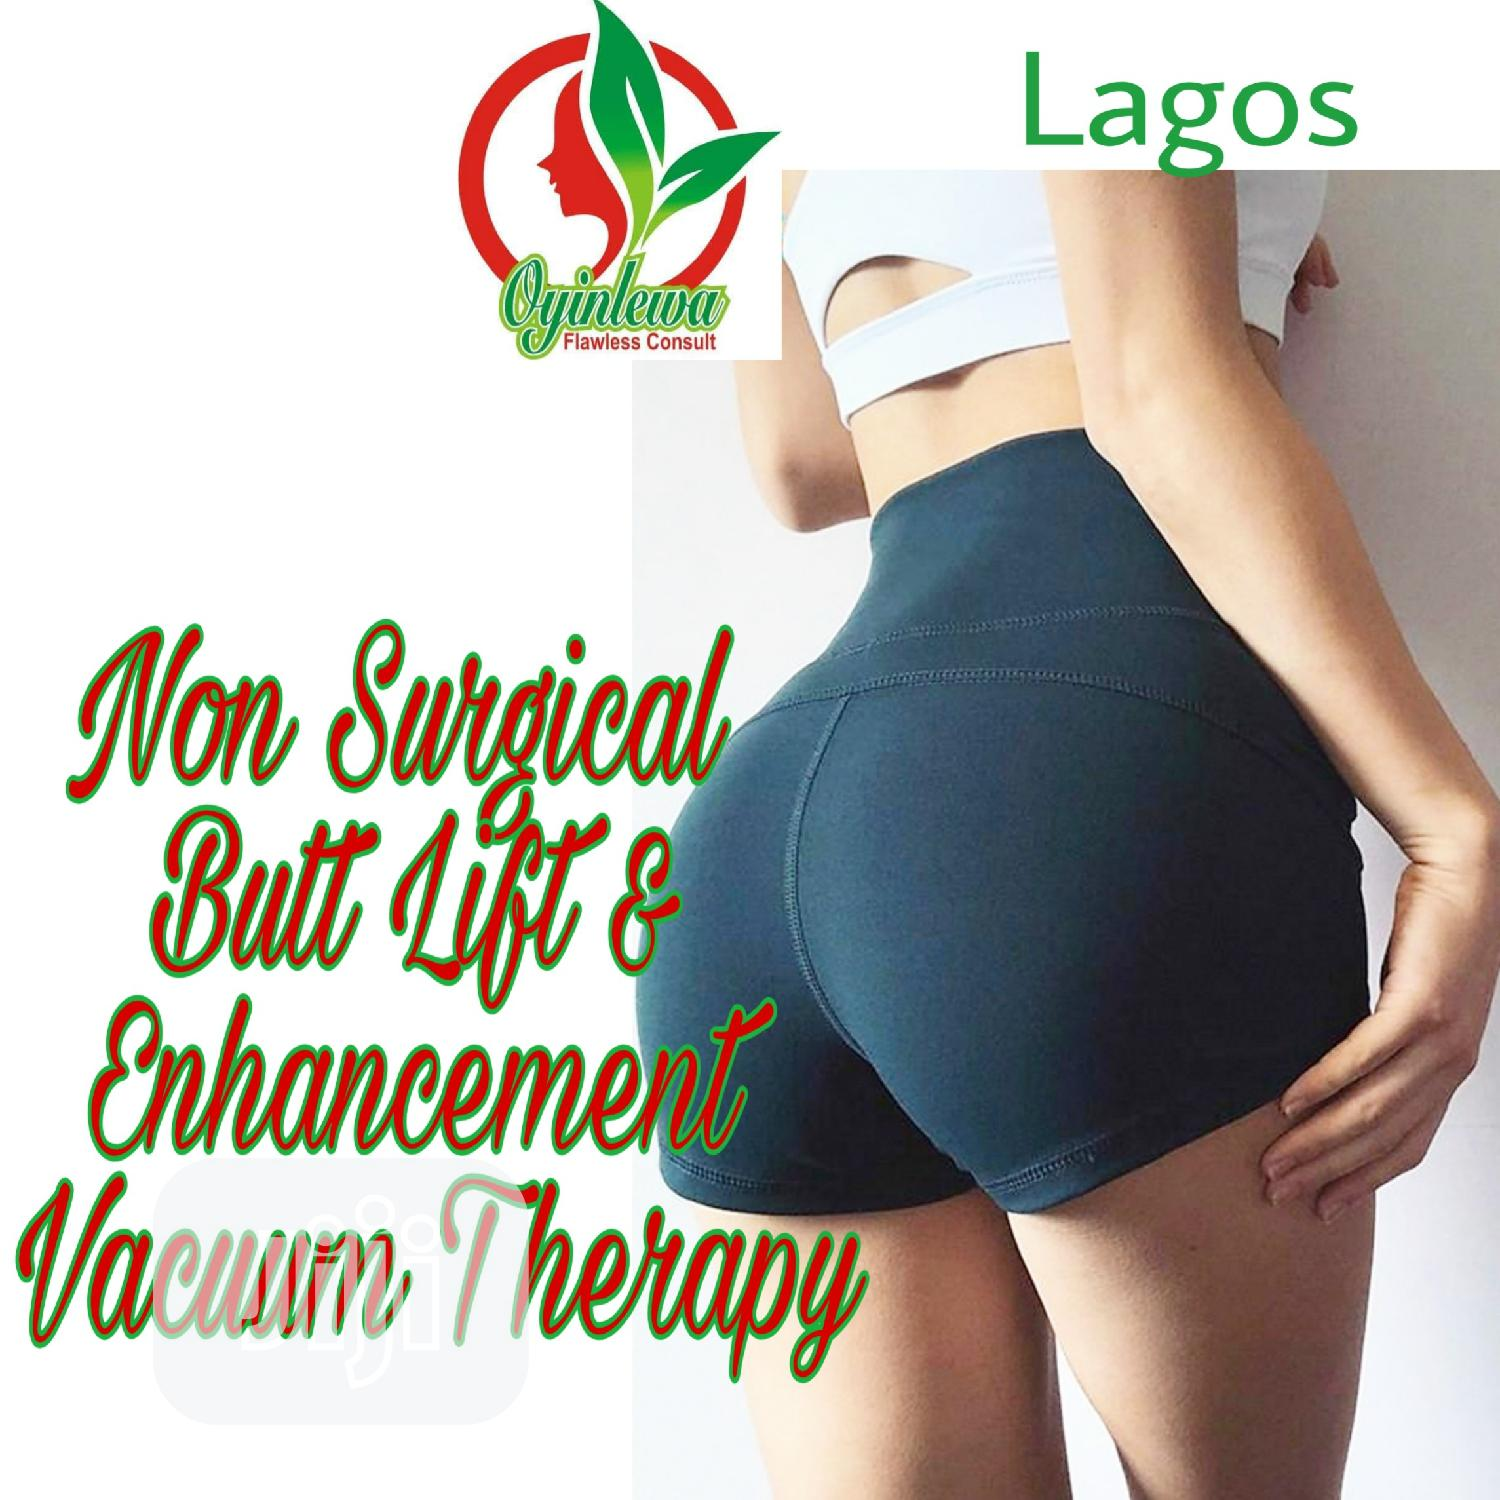 Promo Butt Enlargement Vacuum Therapy